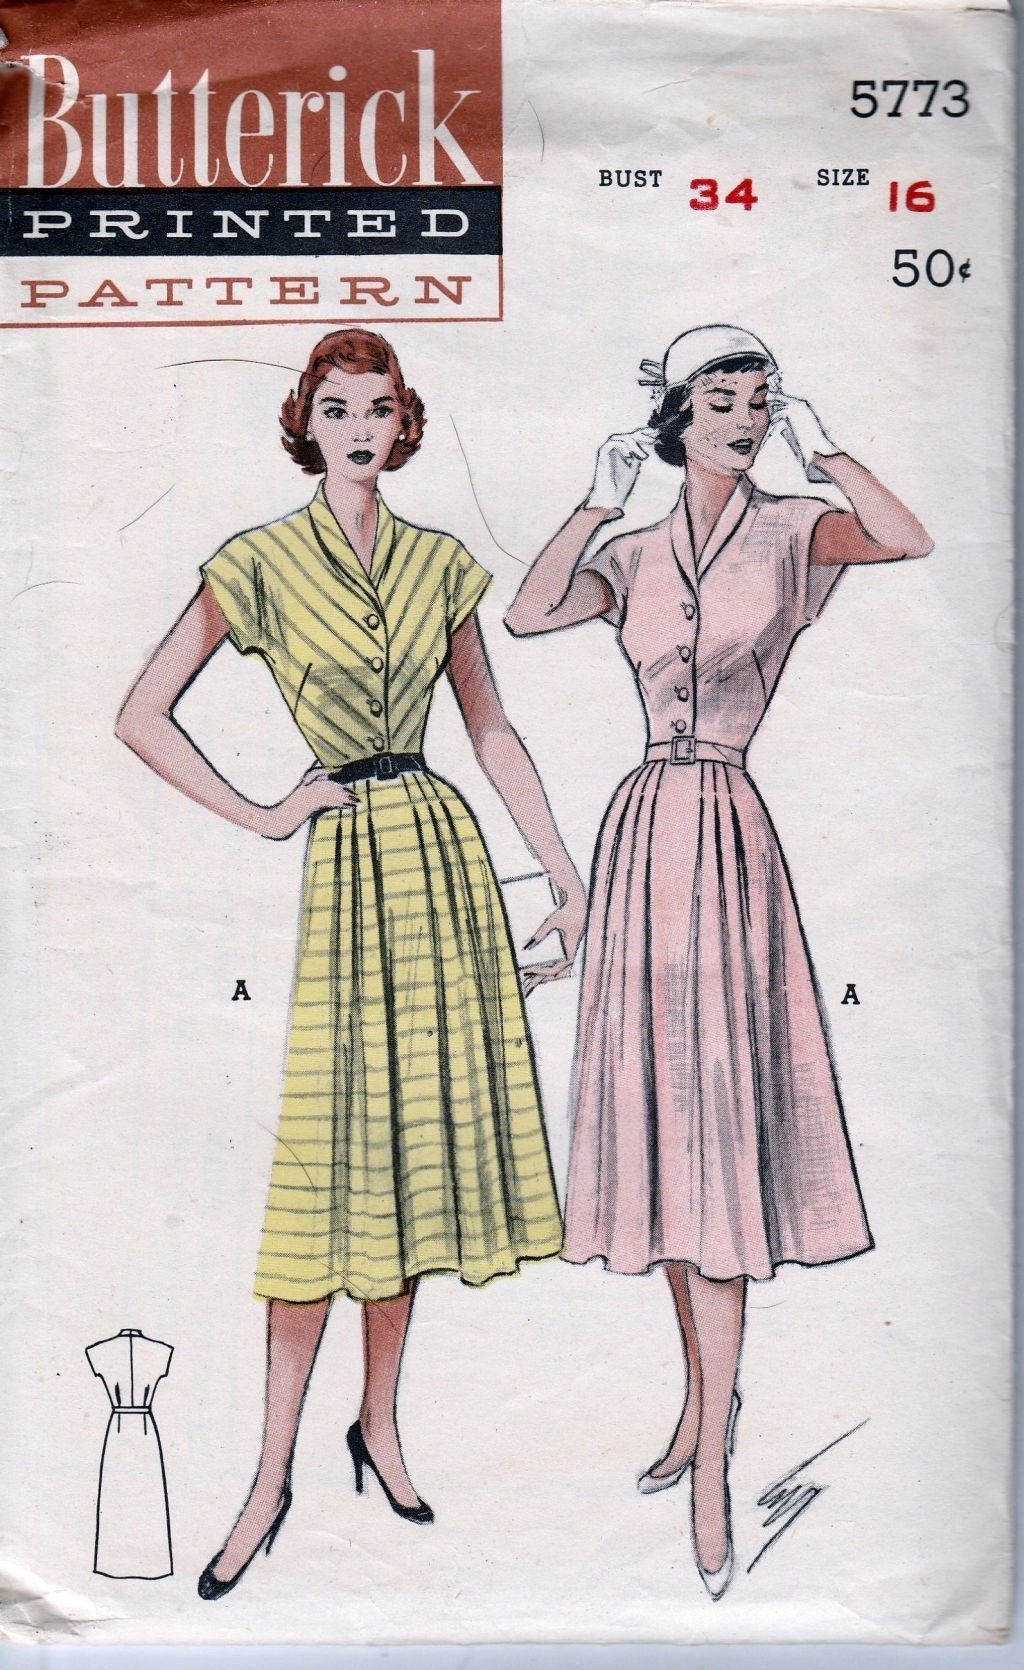 Butterick 5773 Vintage 1950's Sewing Pattern Ladies Casual Shirtwaist House Dress - VintageStitching - Vintage Sewing Patterns